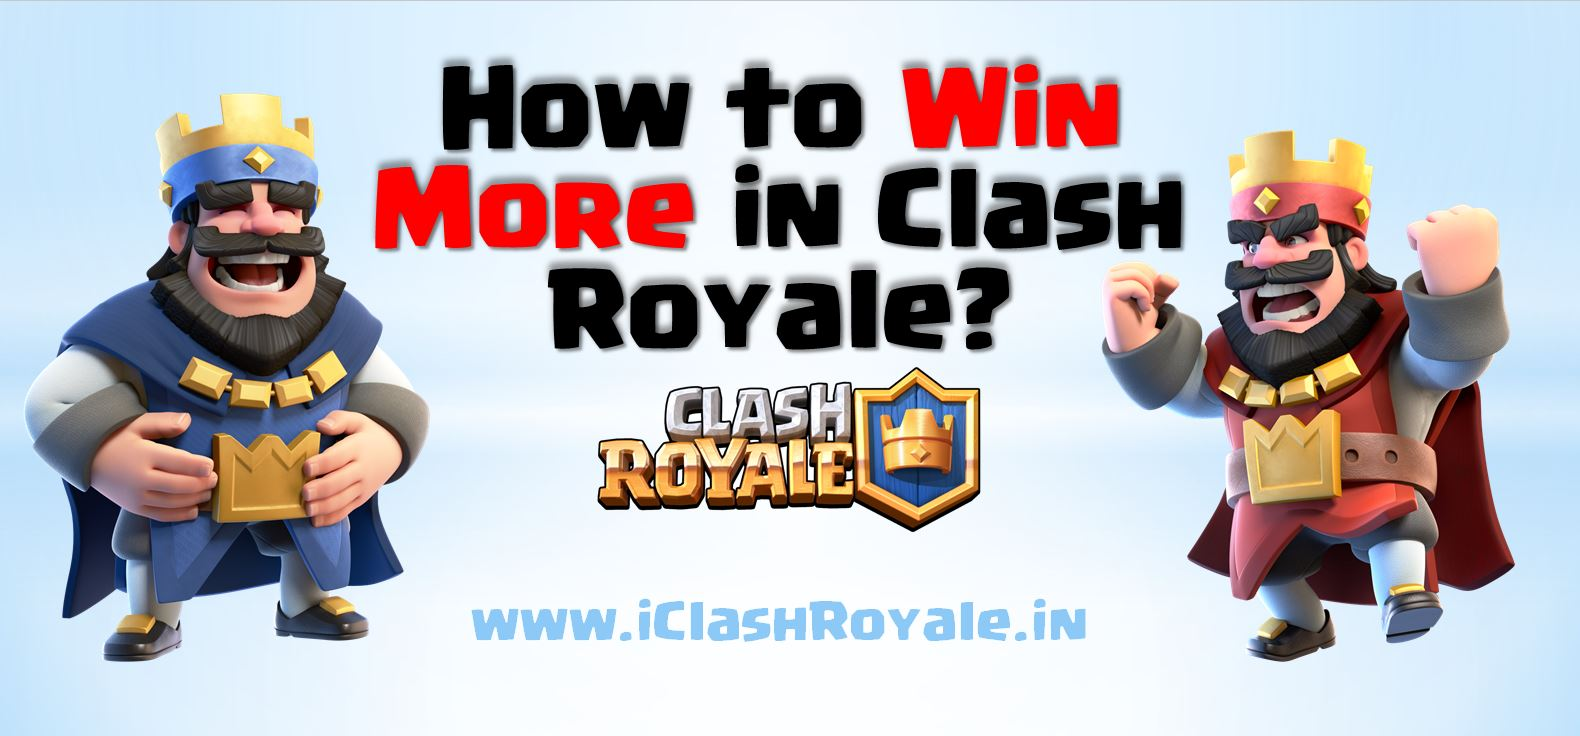 How to push faster in Clash Royale